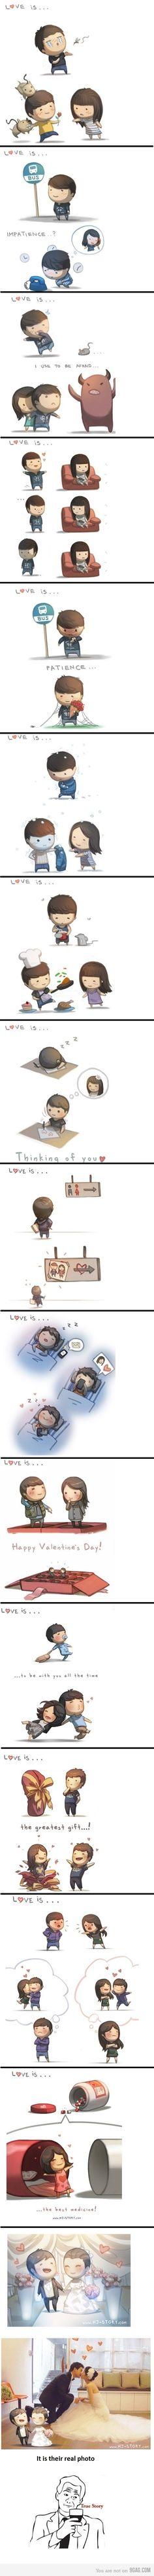 Love is. from HJ story (the artist draws these for his wife)Love is. from HJ story (the artist draws these for his wife) Hj Story, Love Story, Cute Comics, Funny Comics, Images Kawaii, Online Comics, Comics Story, Cute Stories, What Is Love